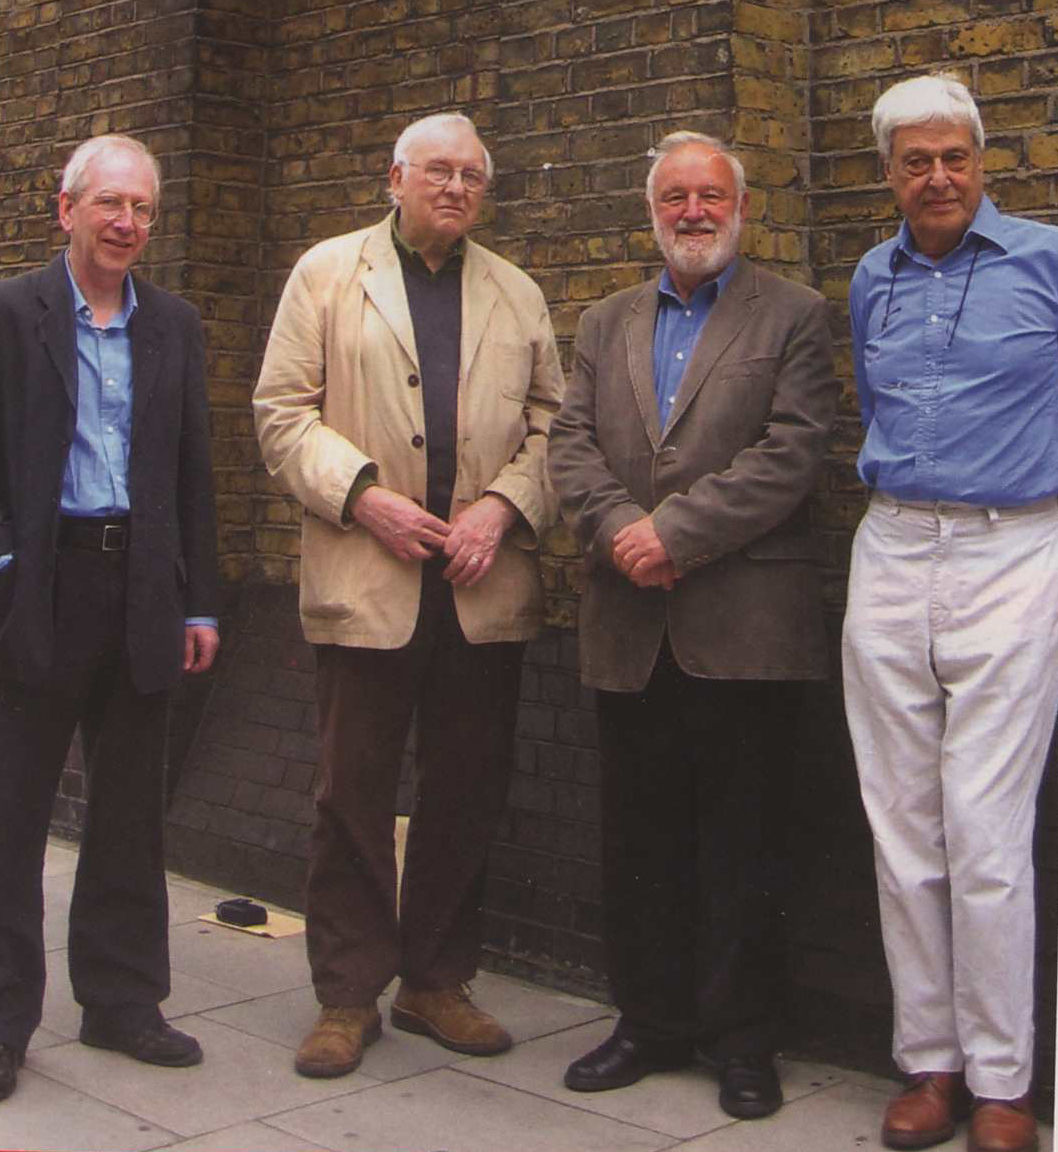 Bertie Dinnage (second from left) with friends (from left) Clive Henderson, Frank Dobson MP and Max Neufeld.